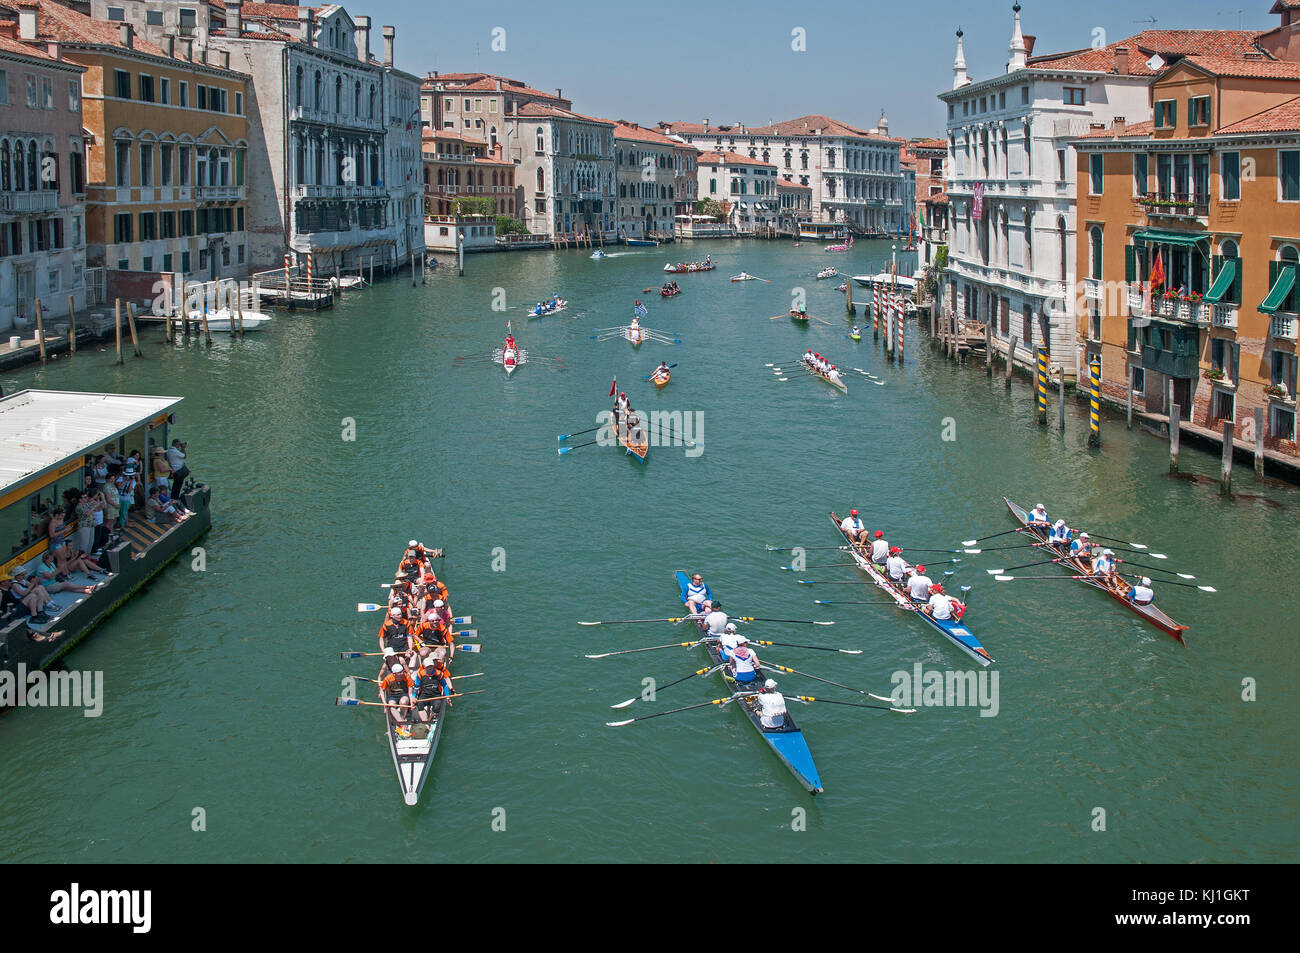 Rowing boats and canoes on the Grand Canal Venice Italy during Volga Lunga rowing festival seen looking north west Stock Photo